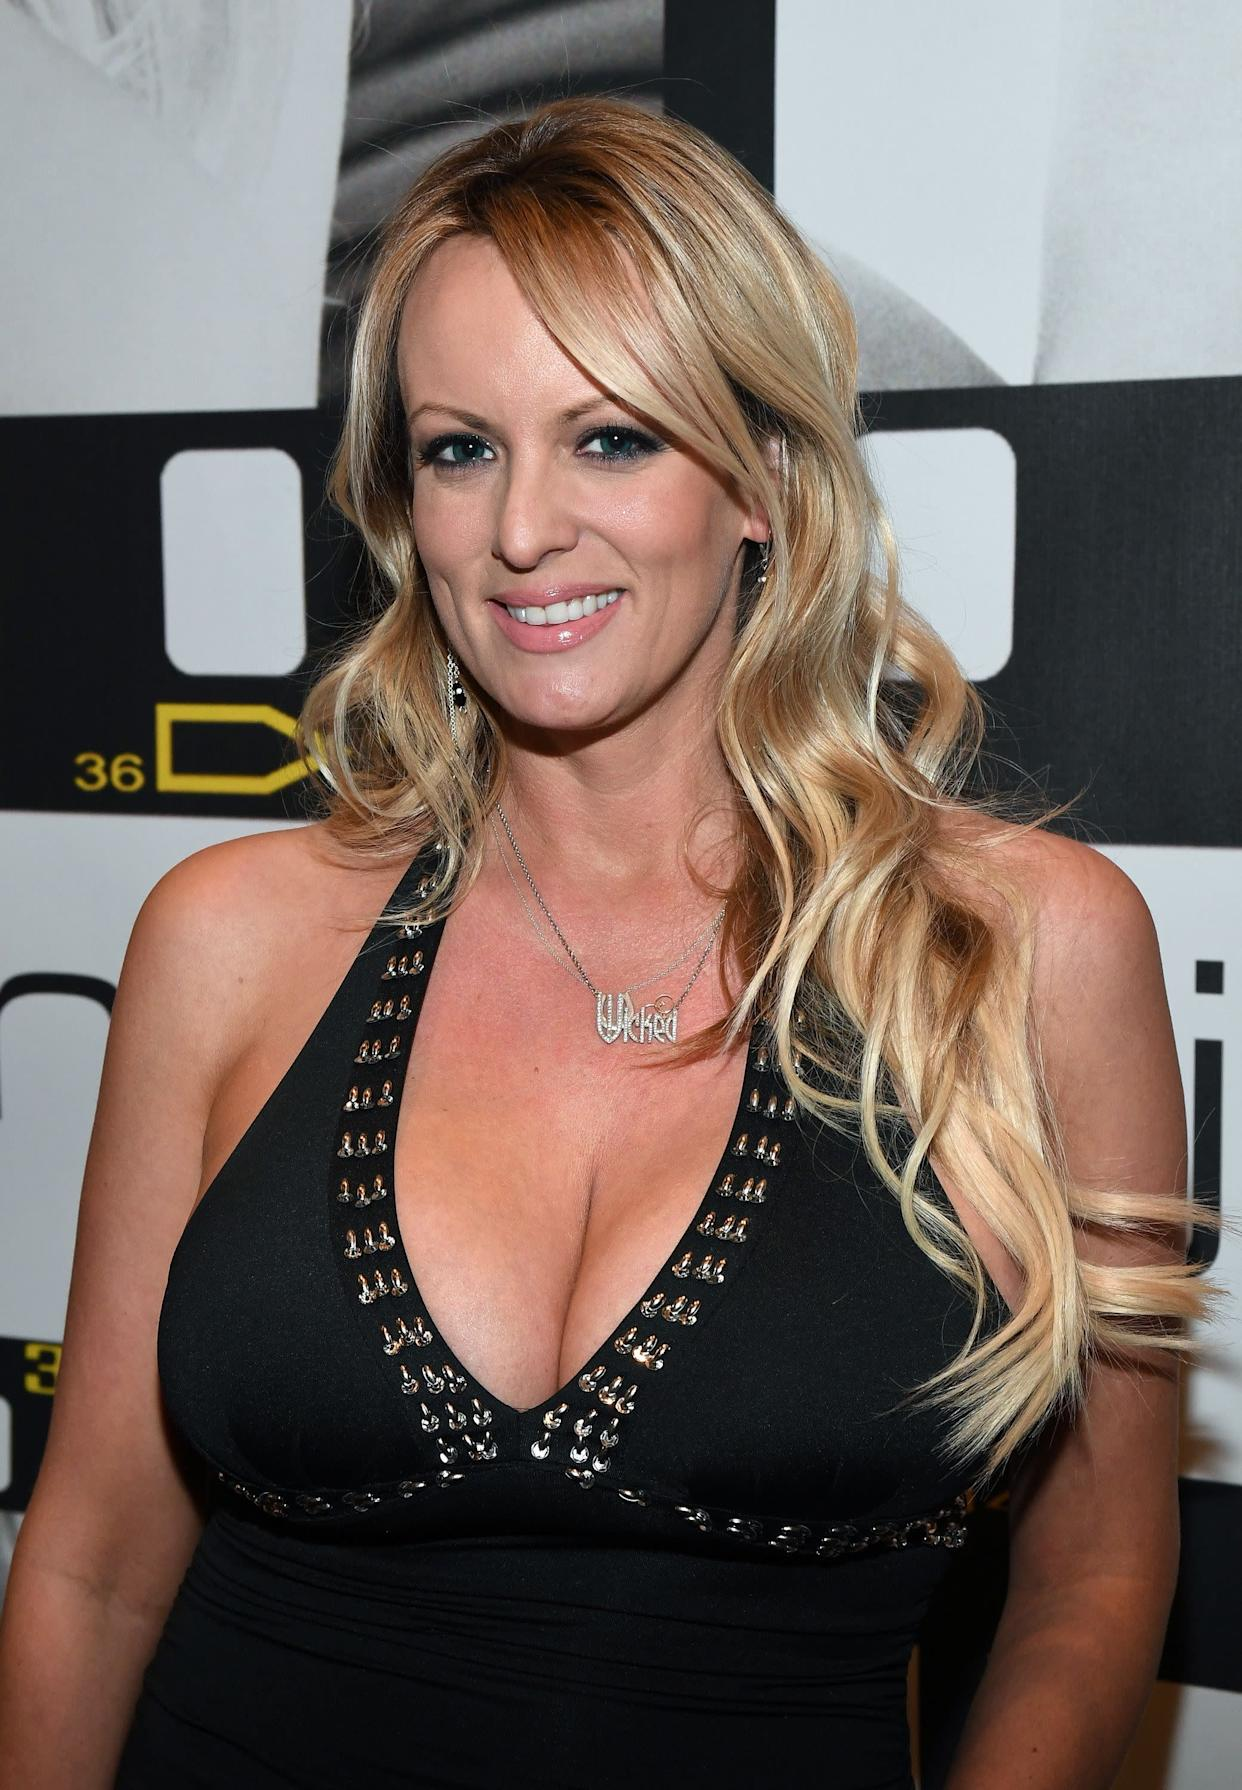 Stephanie Clifford, aka Stormy Daniels, at the AVN Adult Entertainment Expo in Las Vegas on Jan. 18, 2017. (Photo: Ethan Miller via Getty Images)